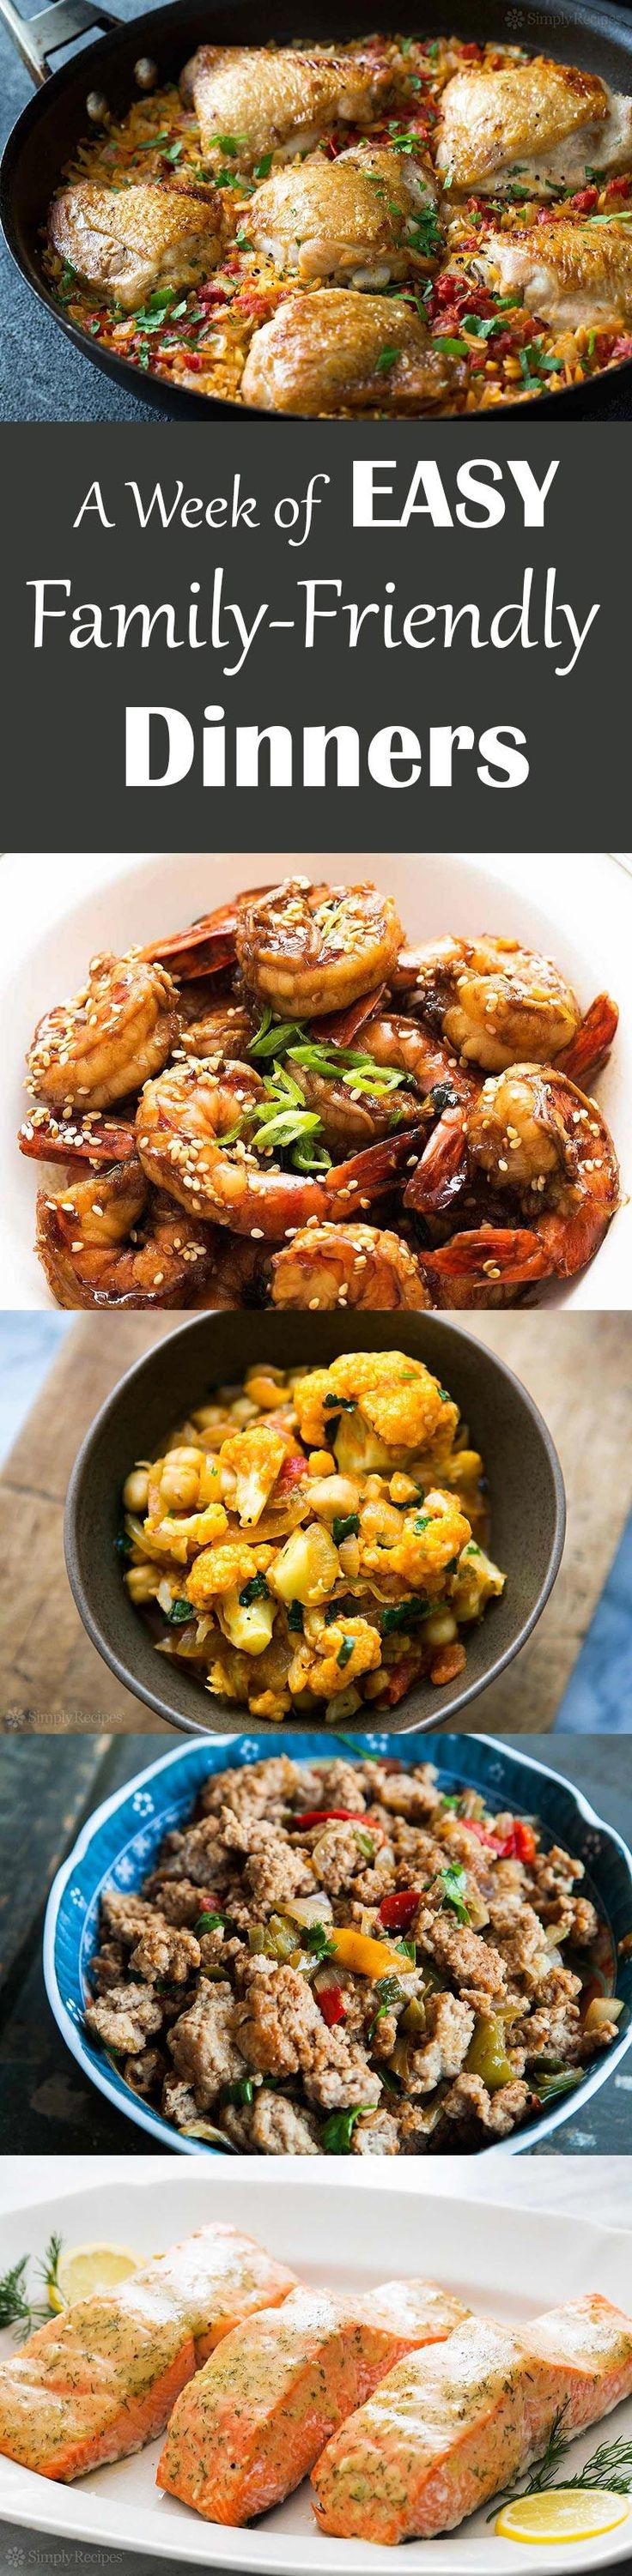 EASY Family-Friendly Dinner Recipes! No fuss, 30 min, healthy meals your whole family will love. With cool Shopping List feature sponsored by grocery delivery service Shipt!